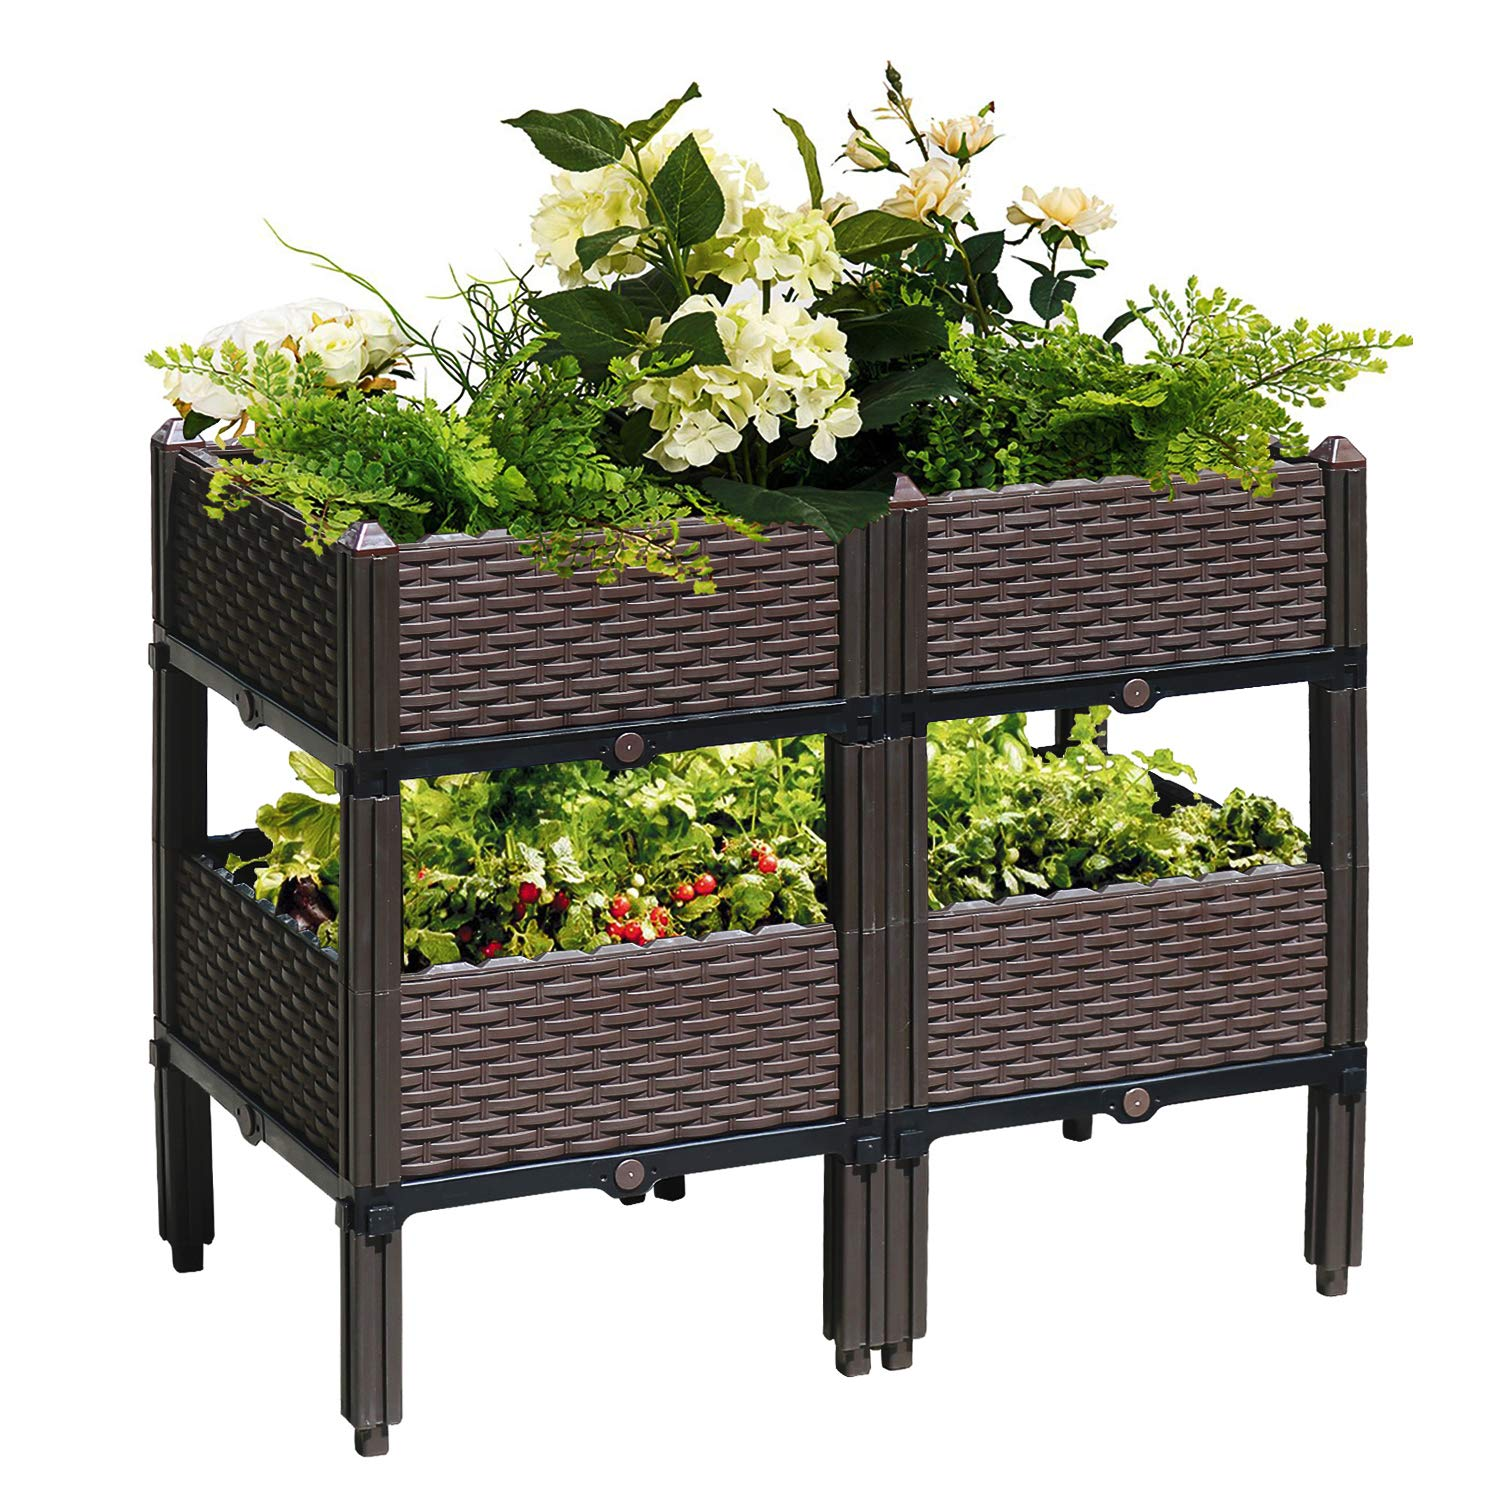 Reliancer Set of 4 Raised Garden Beds w/Brackets Elevated Garden Bed Kit Patio Flower Plant Planter Box Vegetables Planting Container Fence Indoor Outdoor for Porches Decks Balconies Yard Gardening by Reliancer-US